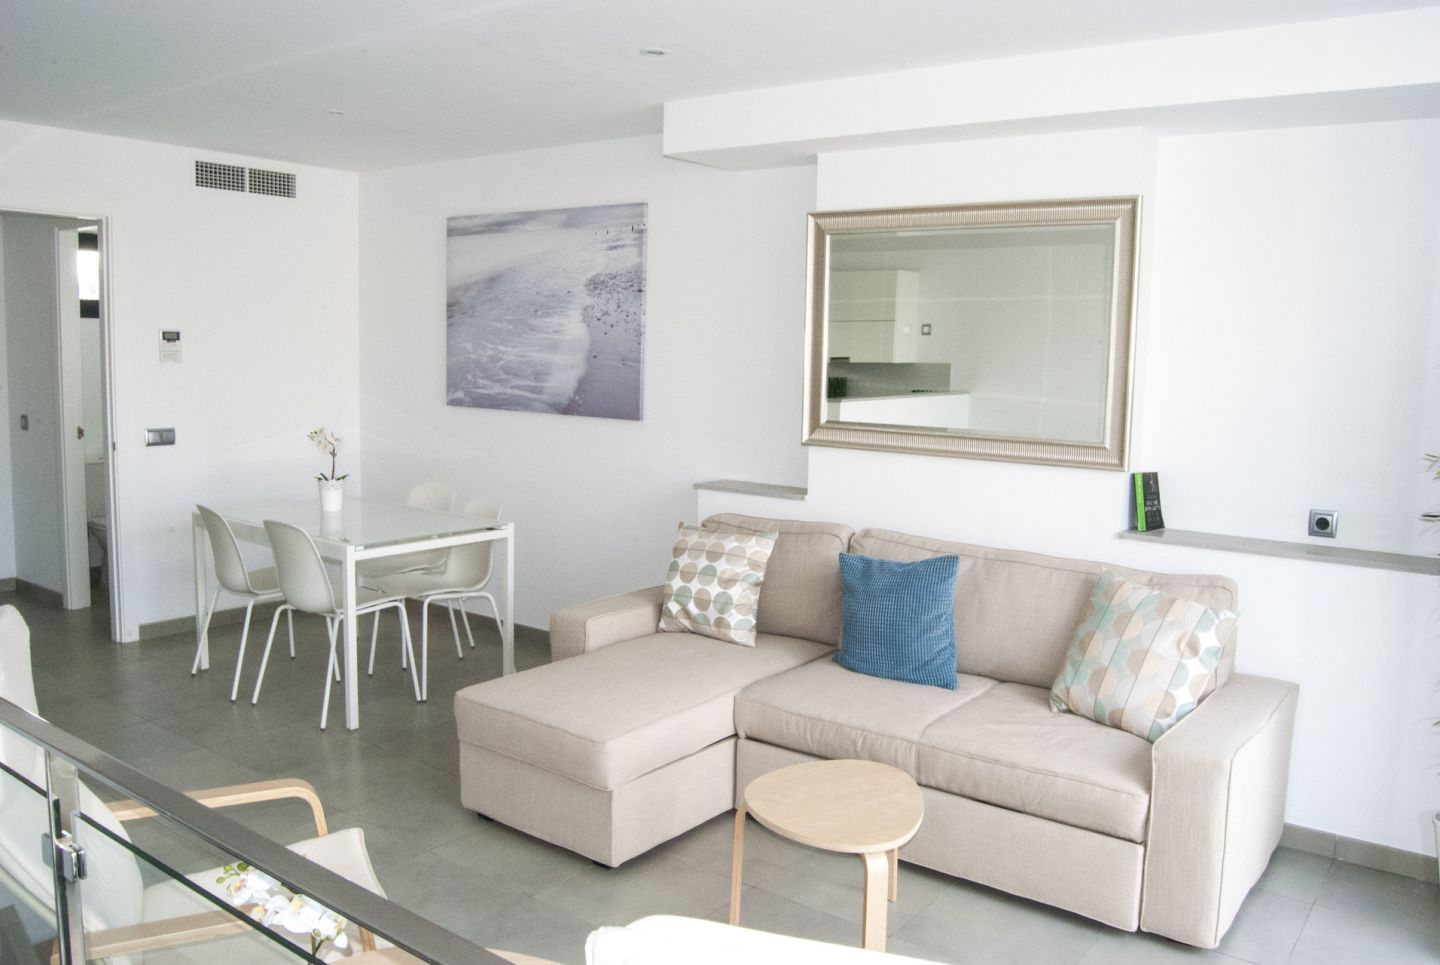 3 Bed Duplex for sale in PUERTO POLLENSA 6